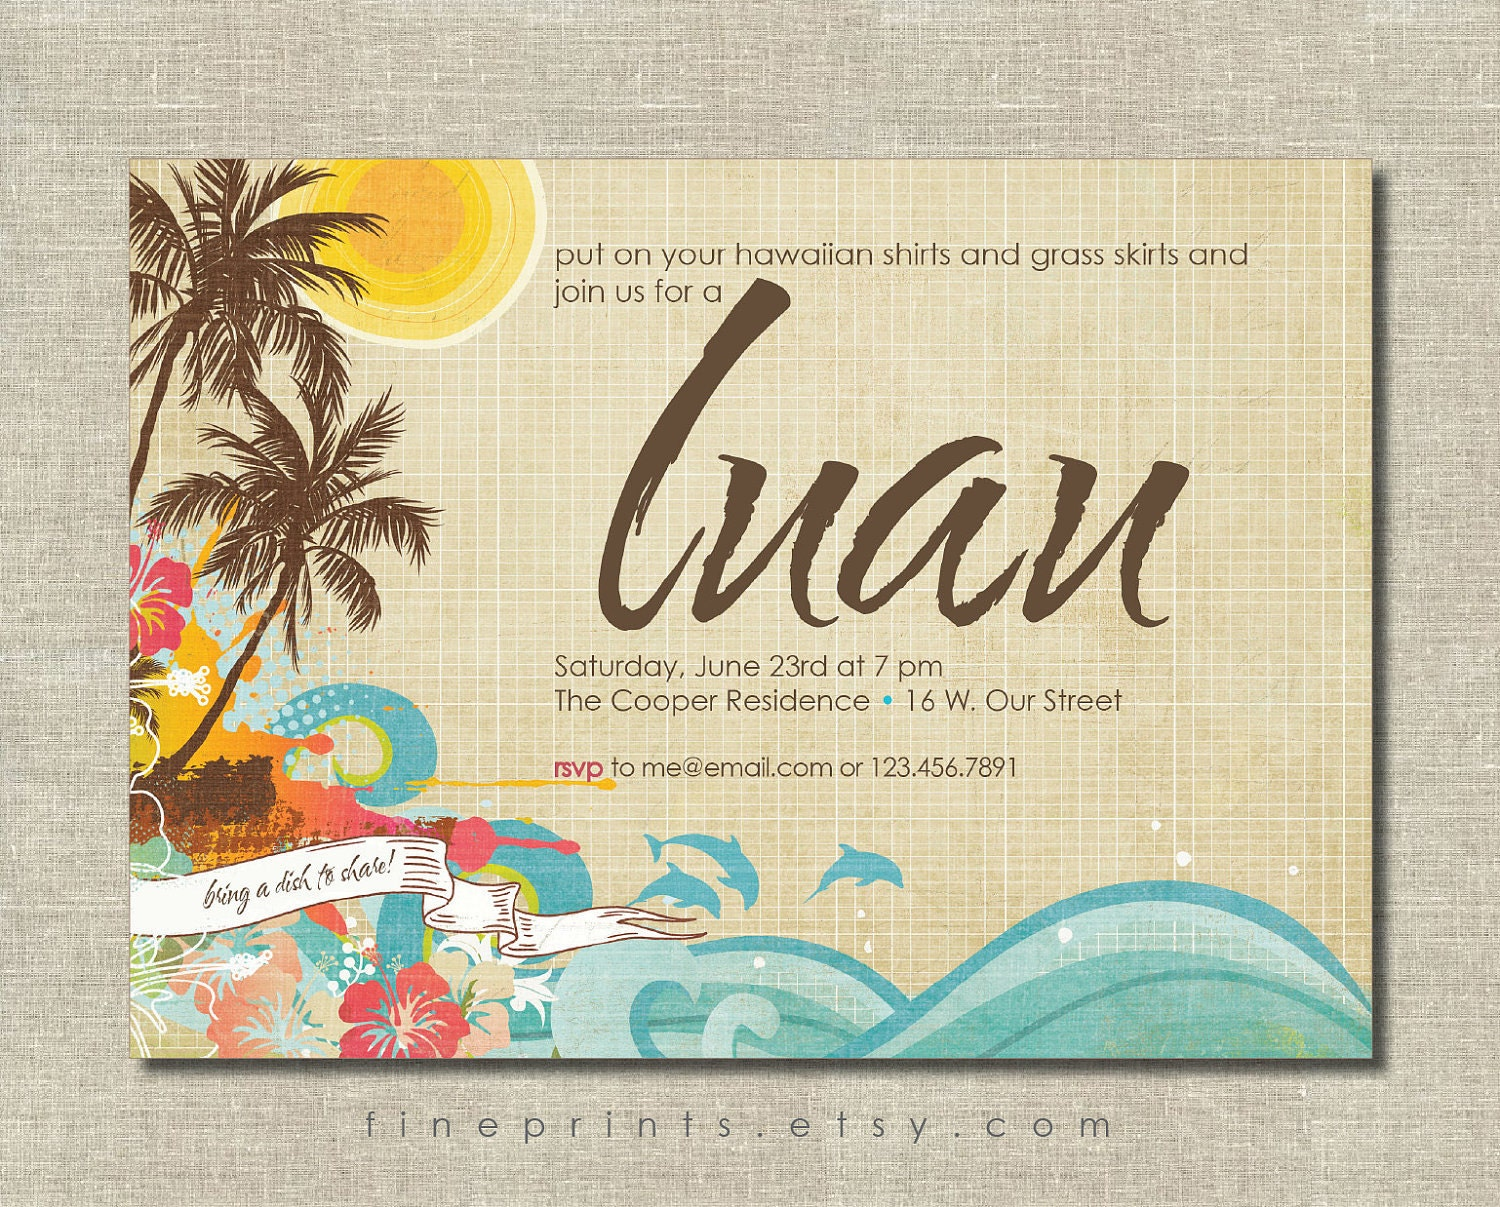 Luau invitation by fineprints on etsy